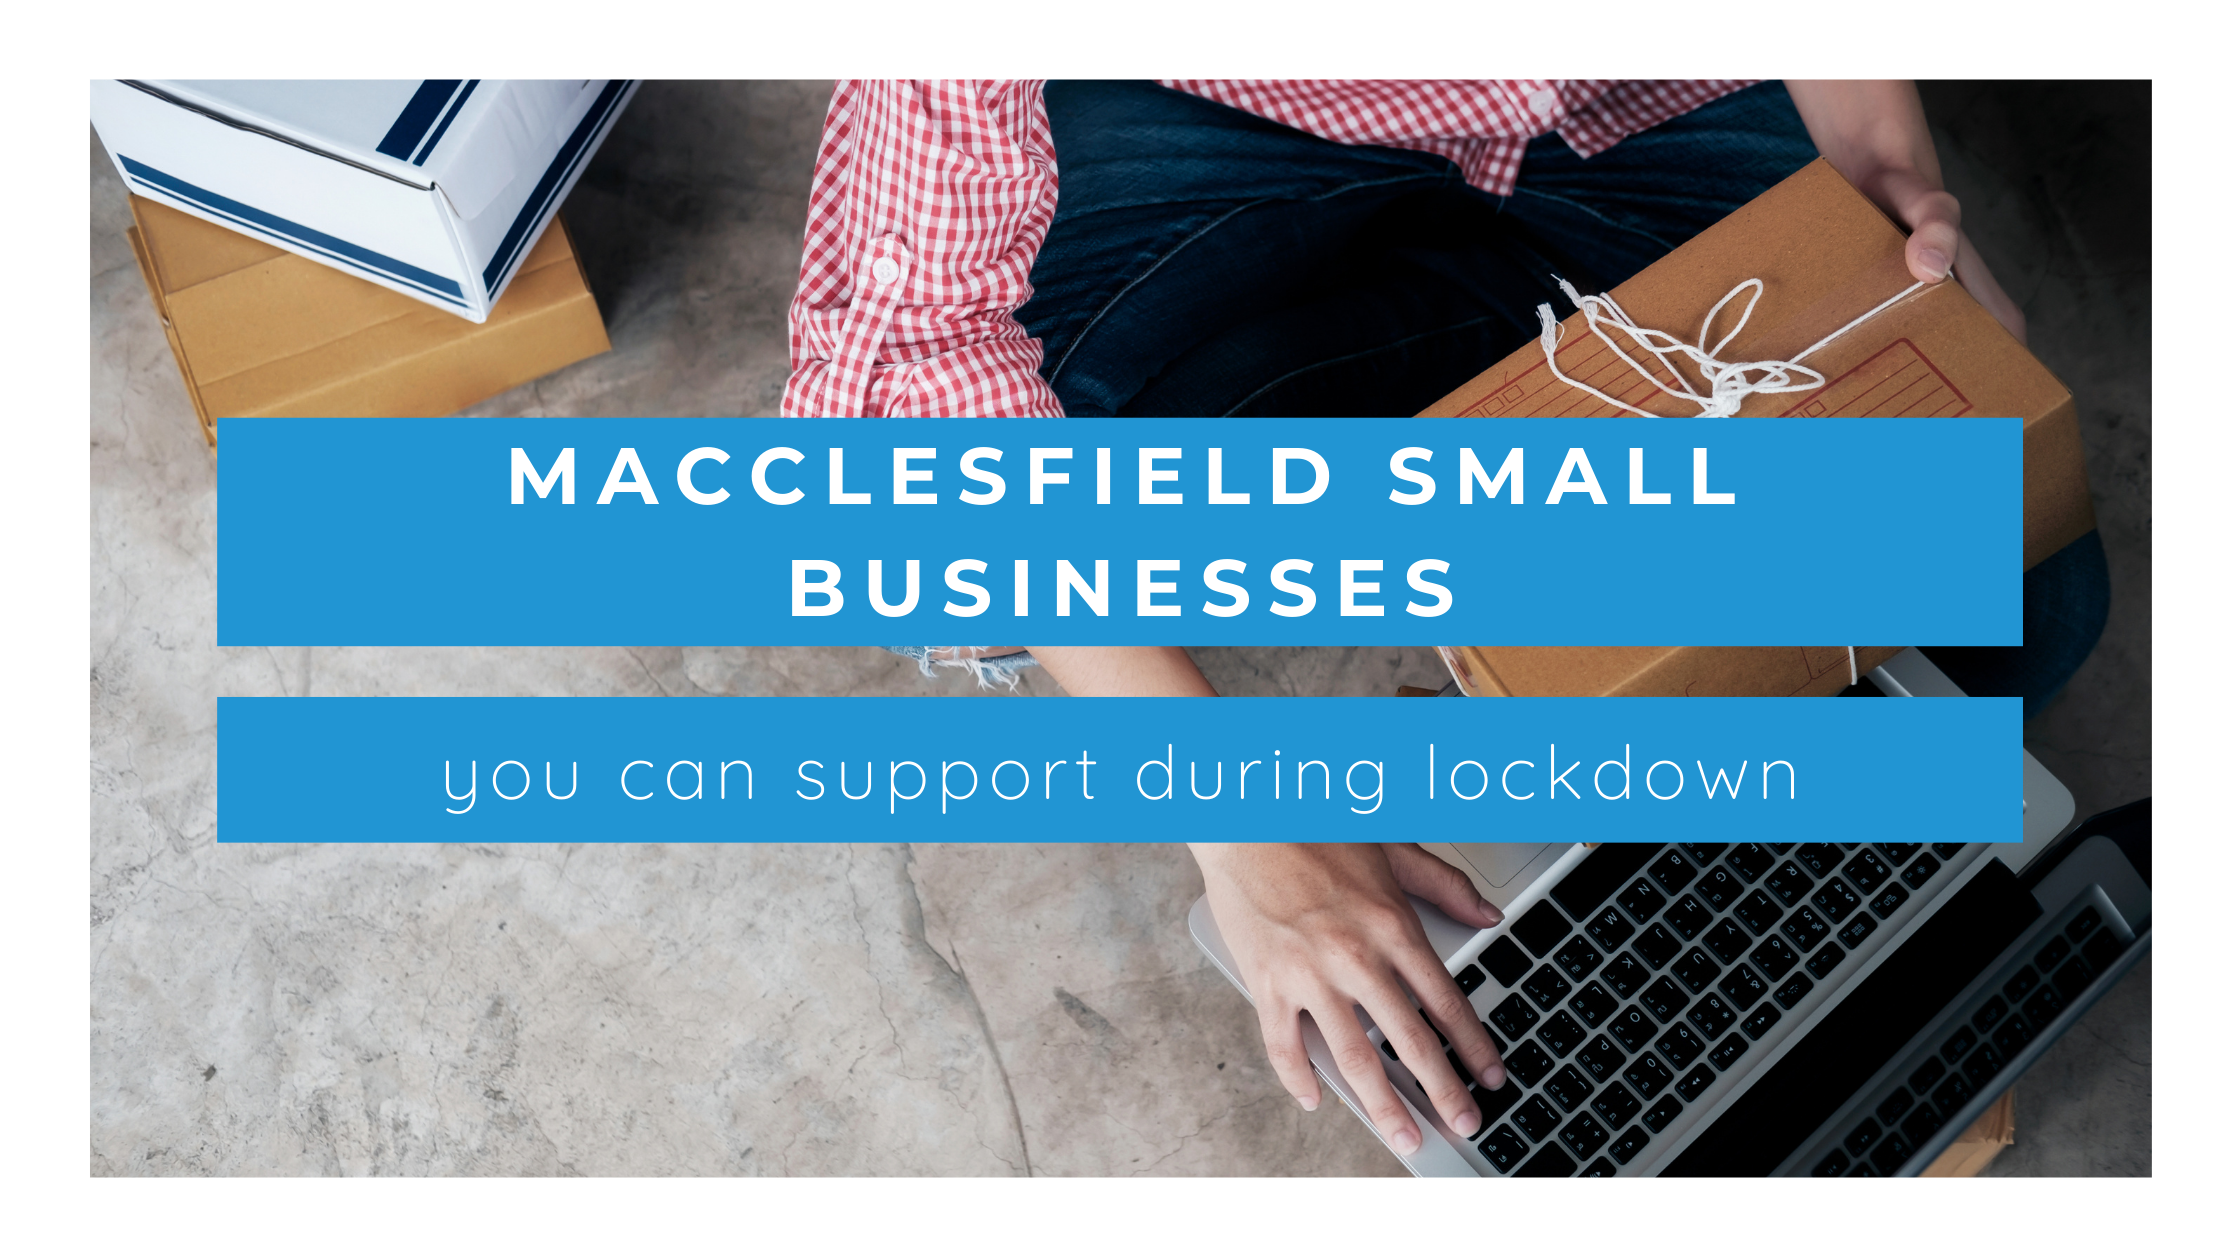 Macclesfield Small Businesses you can support online